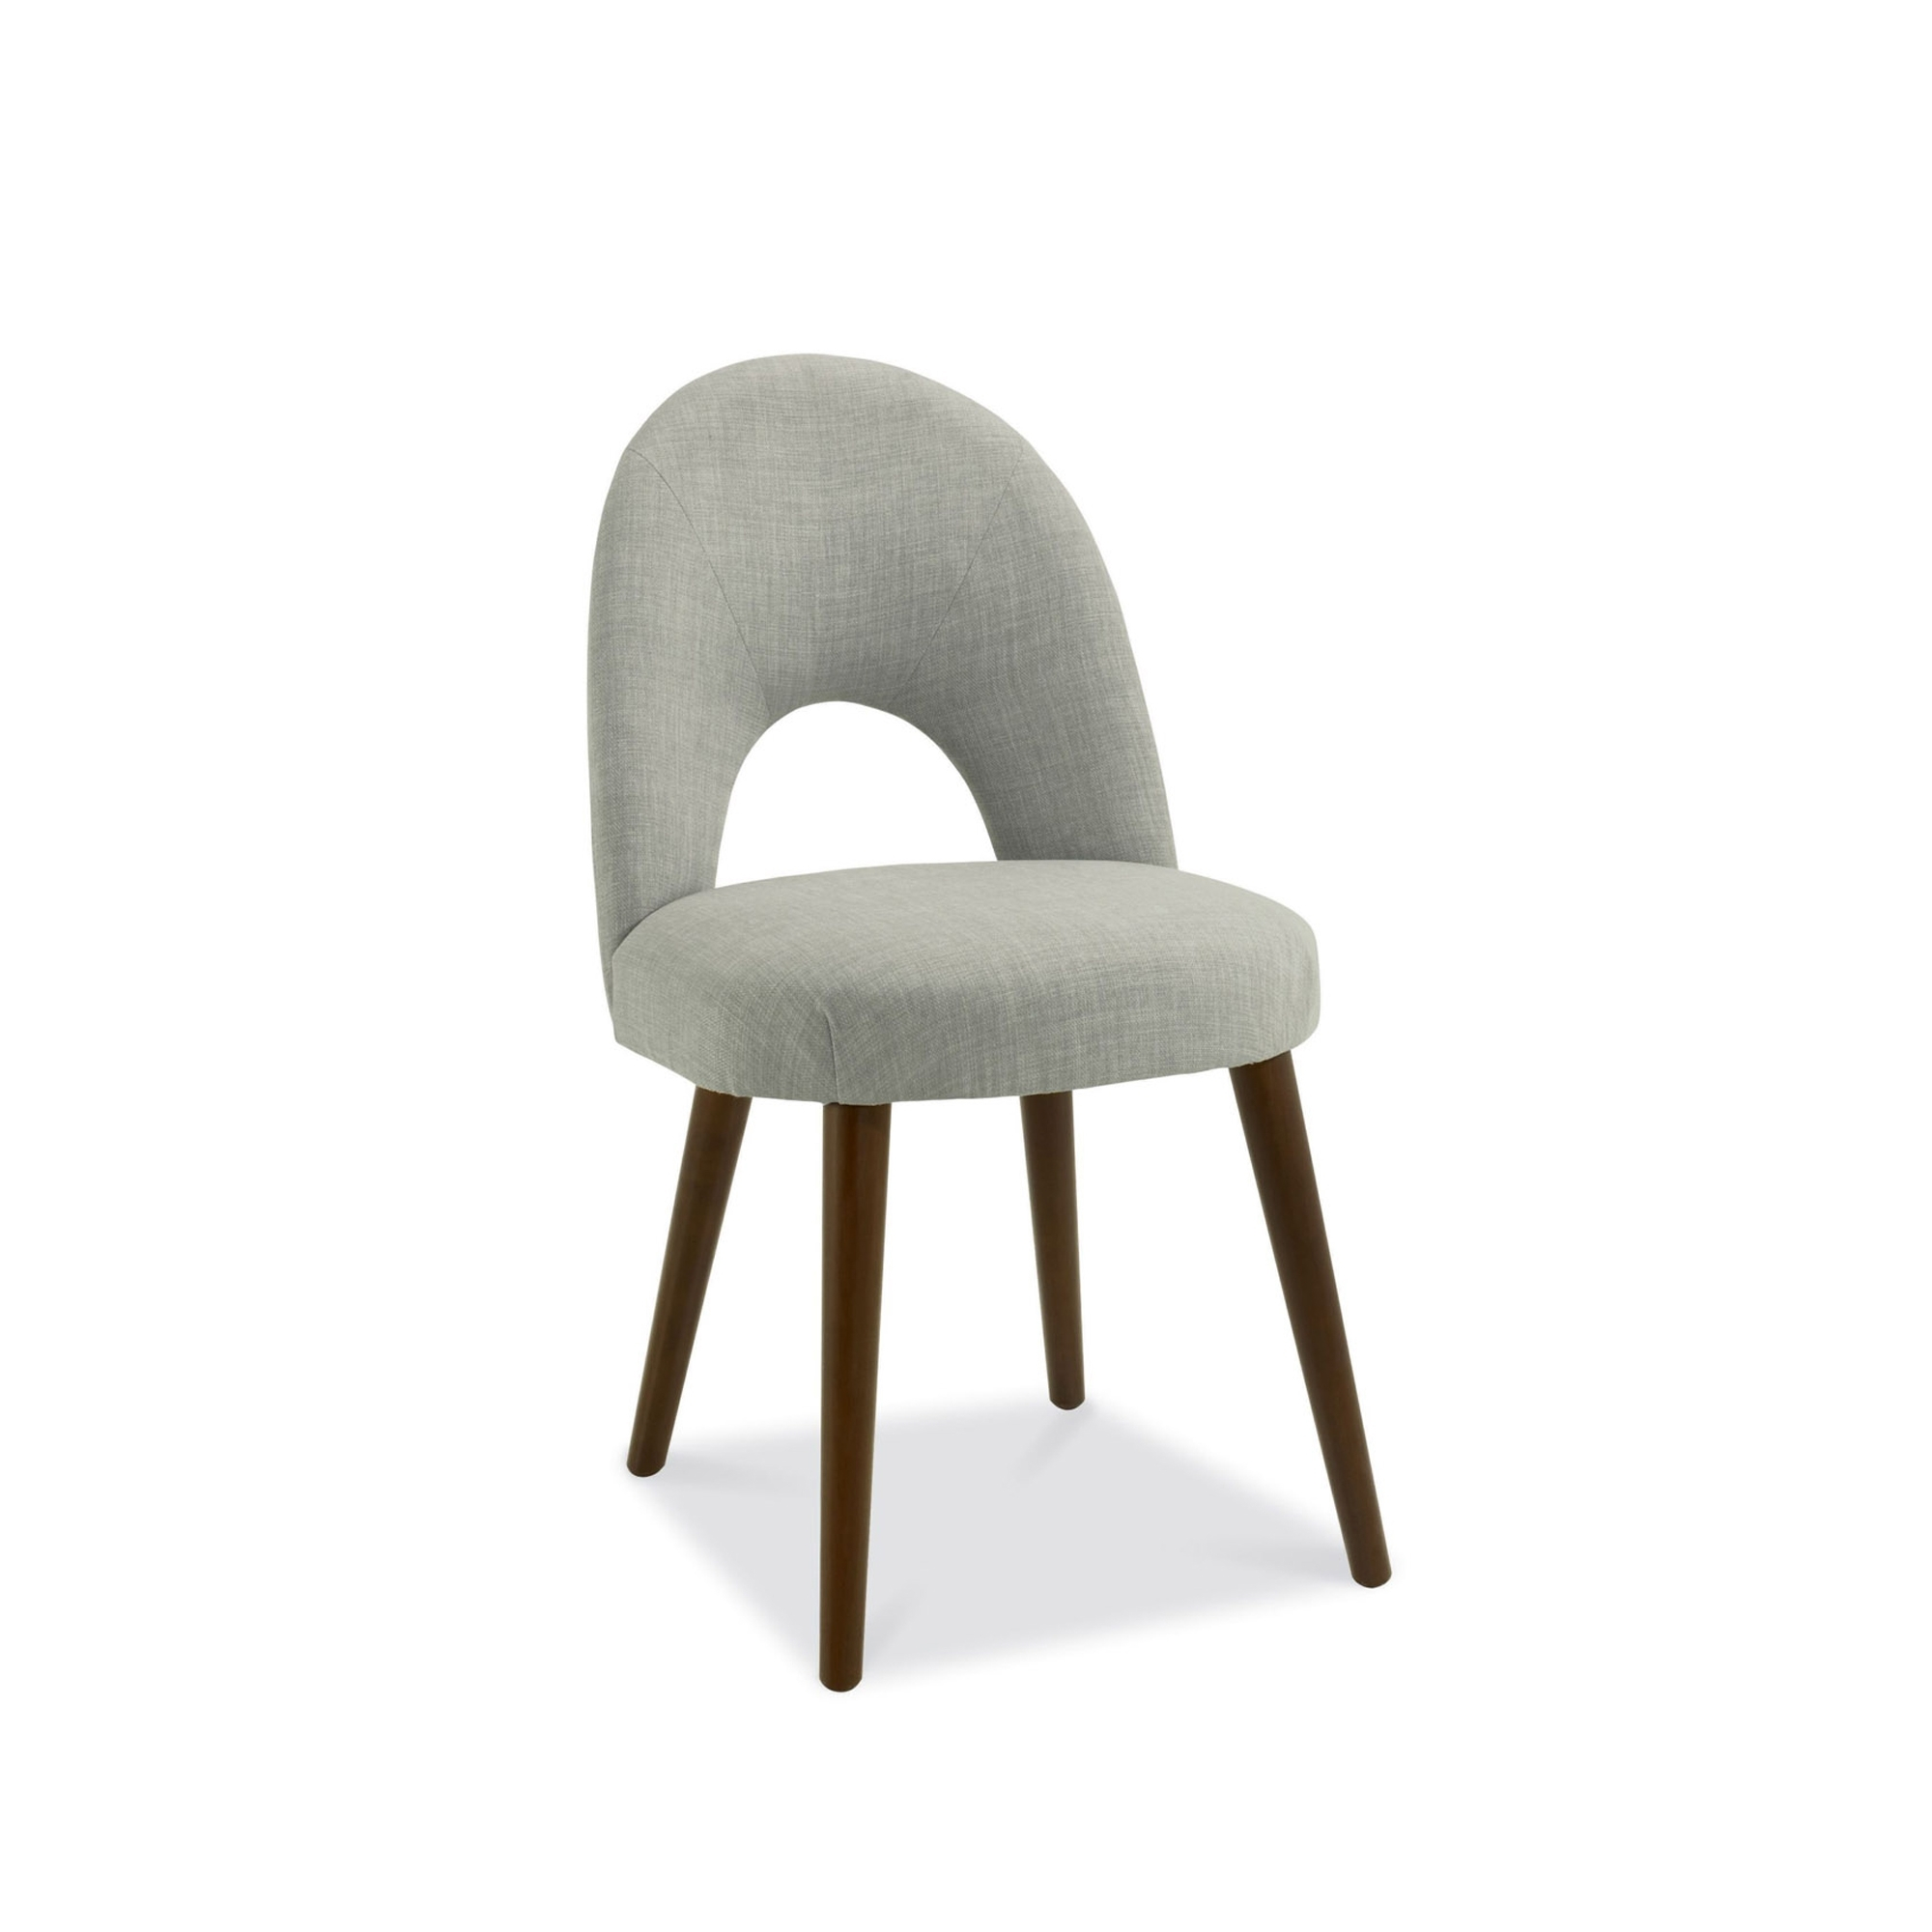 Cookes collection norway walnut upholstered dining chair for Upholstered linen dining chairs